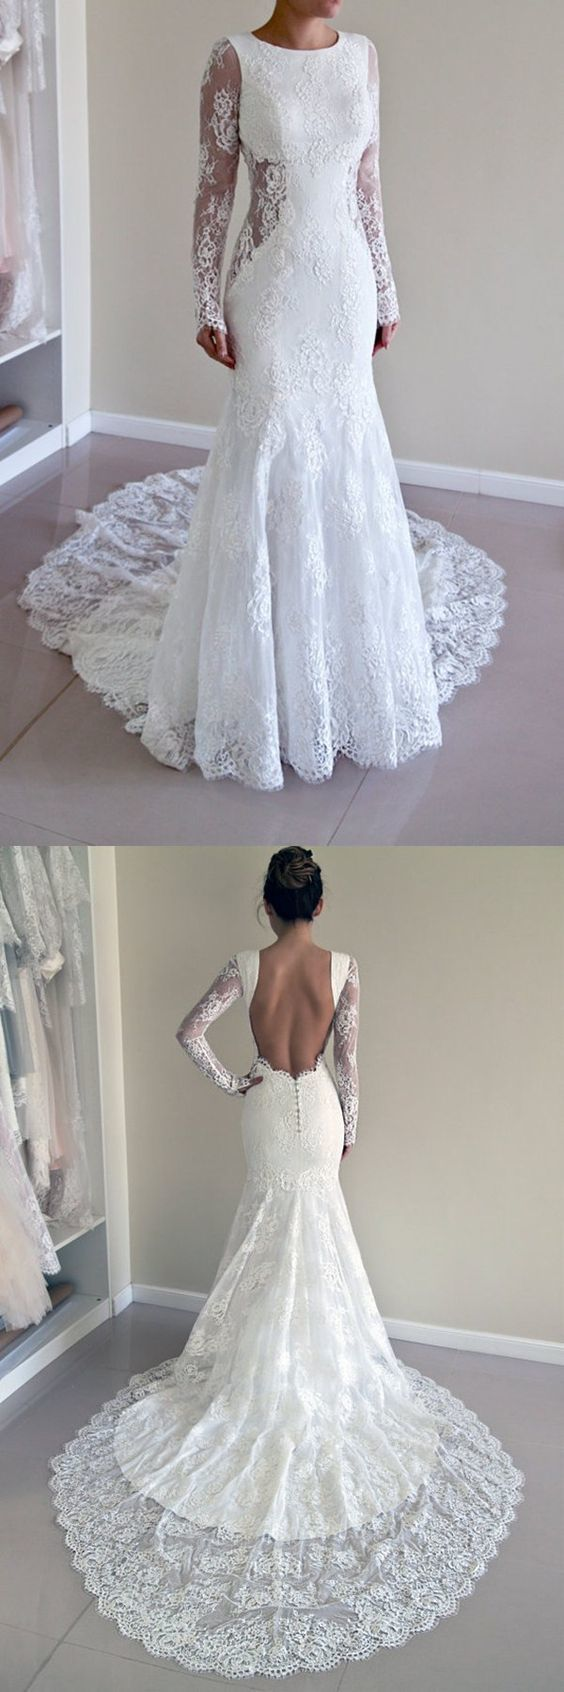 Charming Scoop Open Back Sheath Lace Mermaid Wedding Dress with Long Sleeves